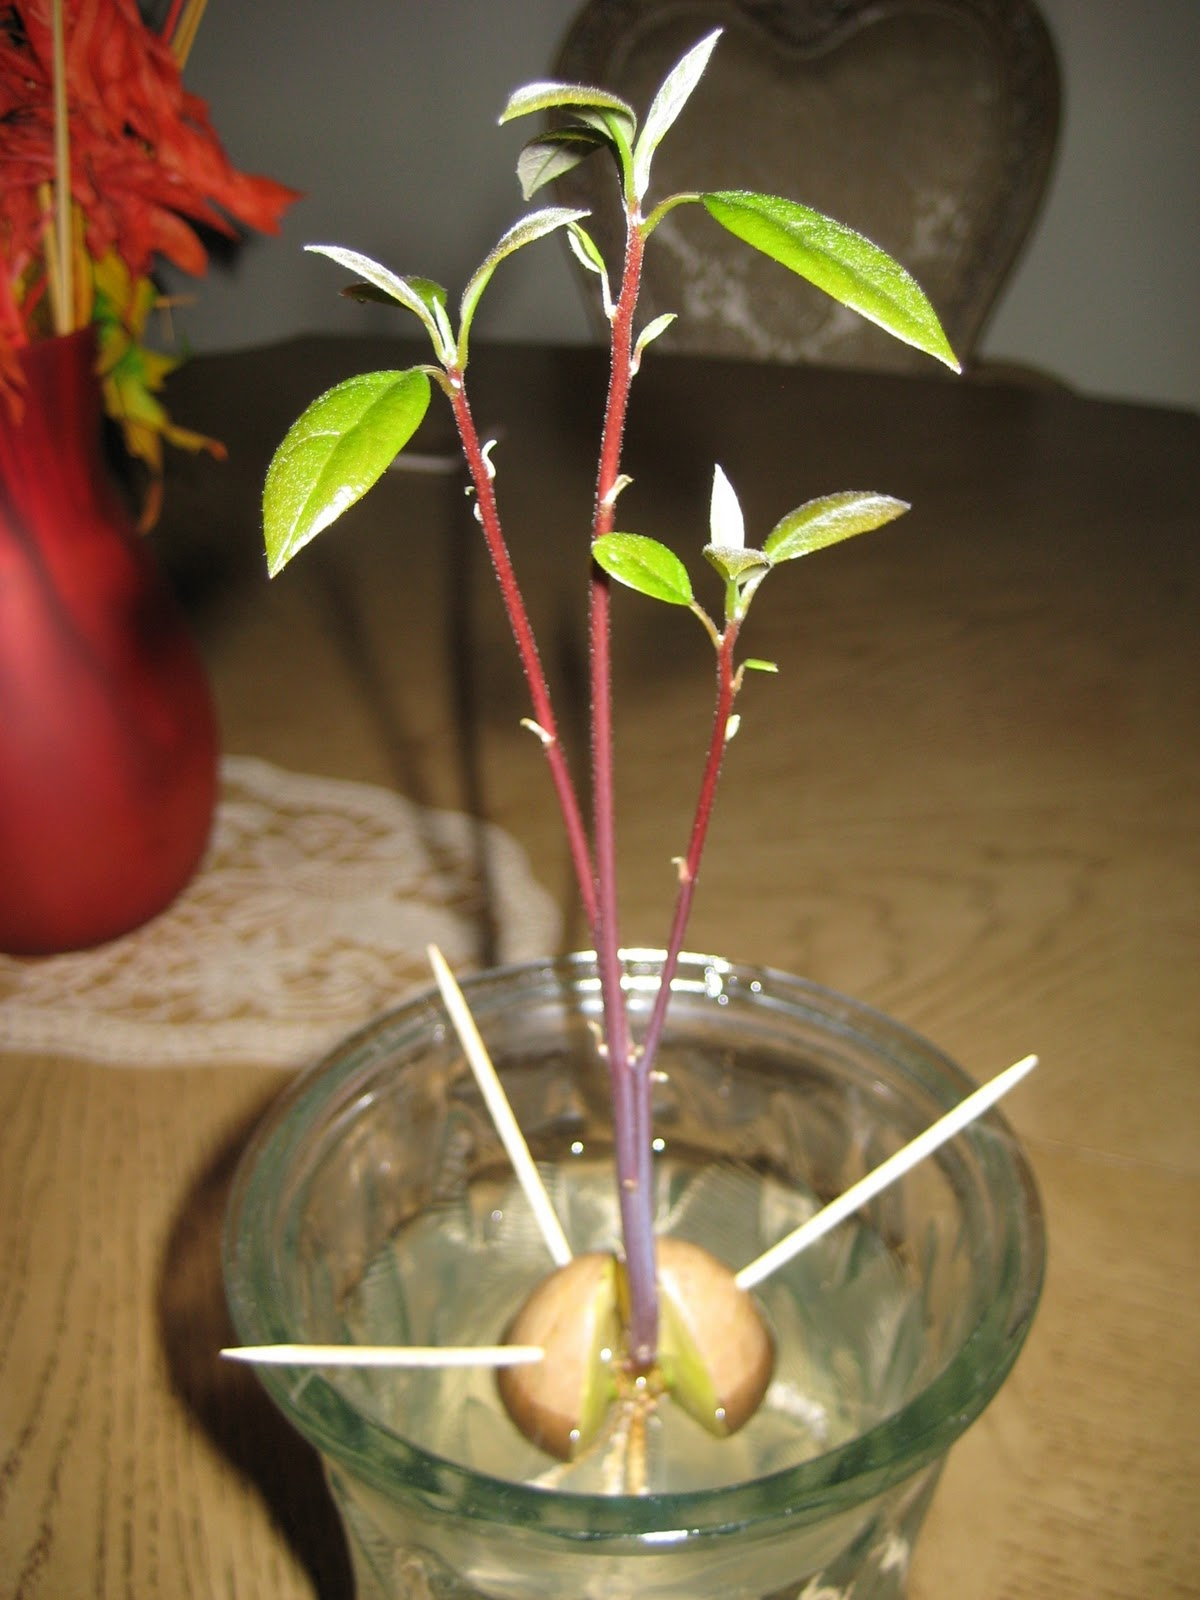 How to grow an avocado tree from an avocado pit the auto for How do you grow an avocado seed